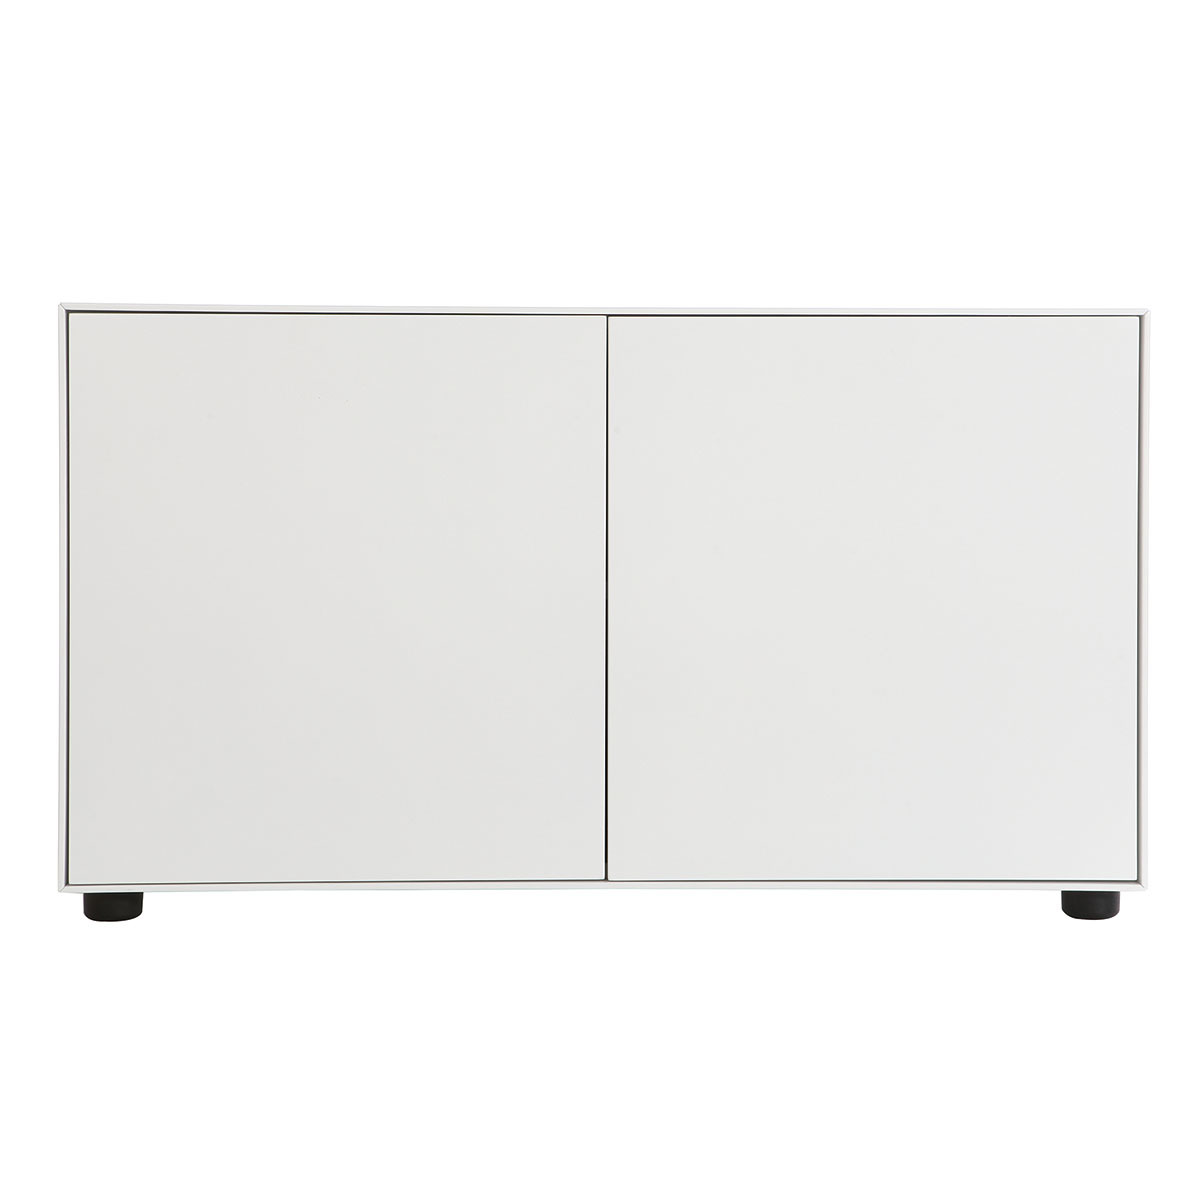 Mobile TV design bianco opaco 90x40cm 2 porte MARK